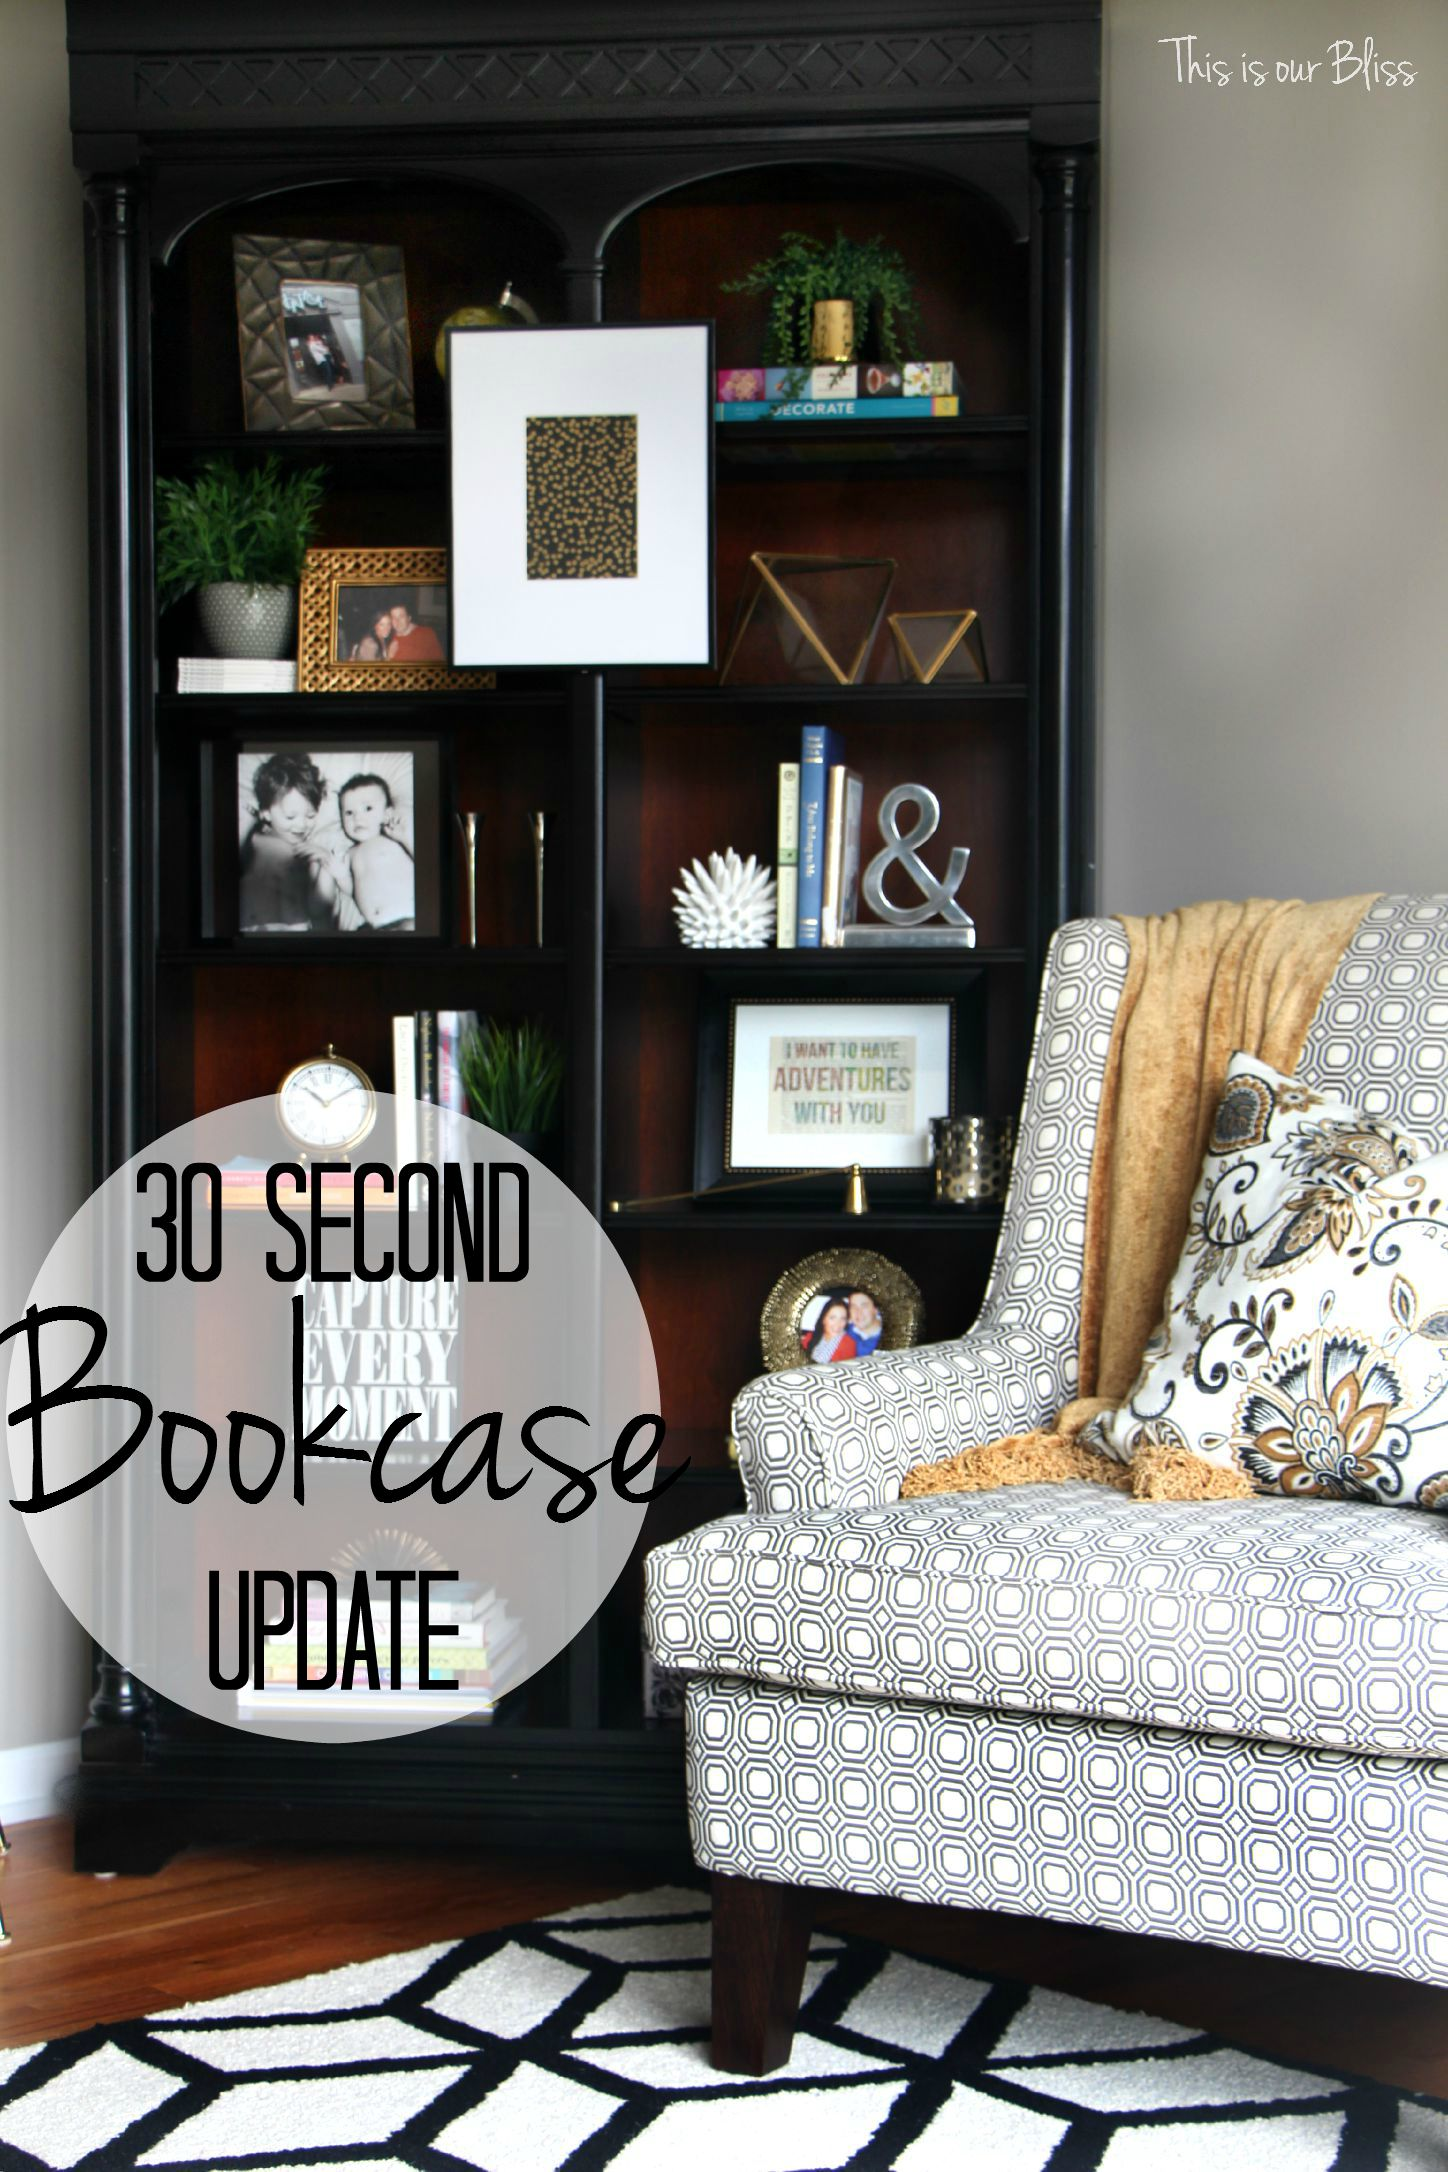 how to update an old bookcase with command hooks - 30 second makeover - formal living room bookcase 1- hanging art on a bookcase - living room chair - bookcase after - This is our bliss